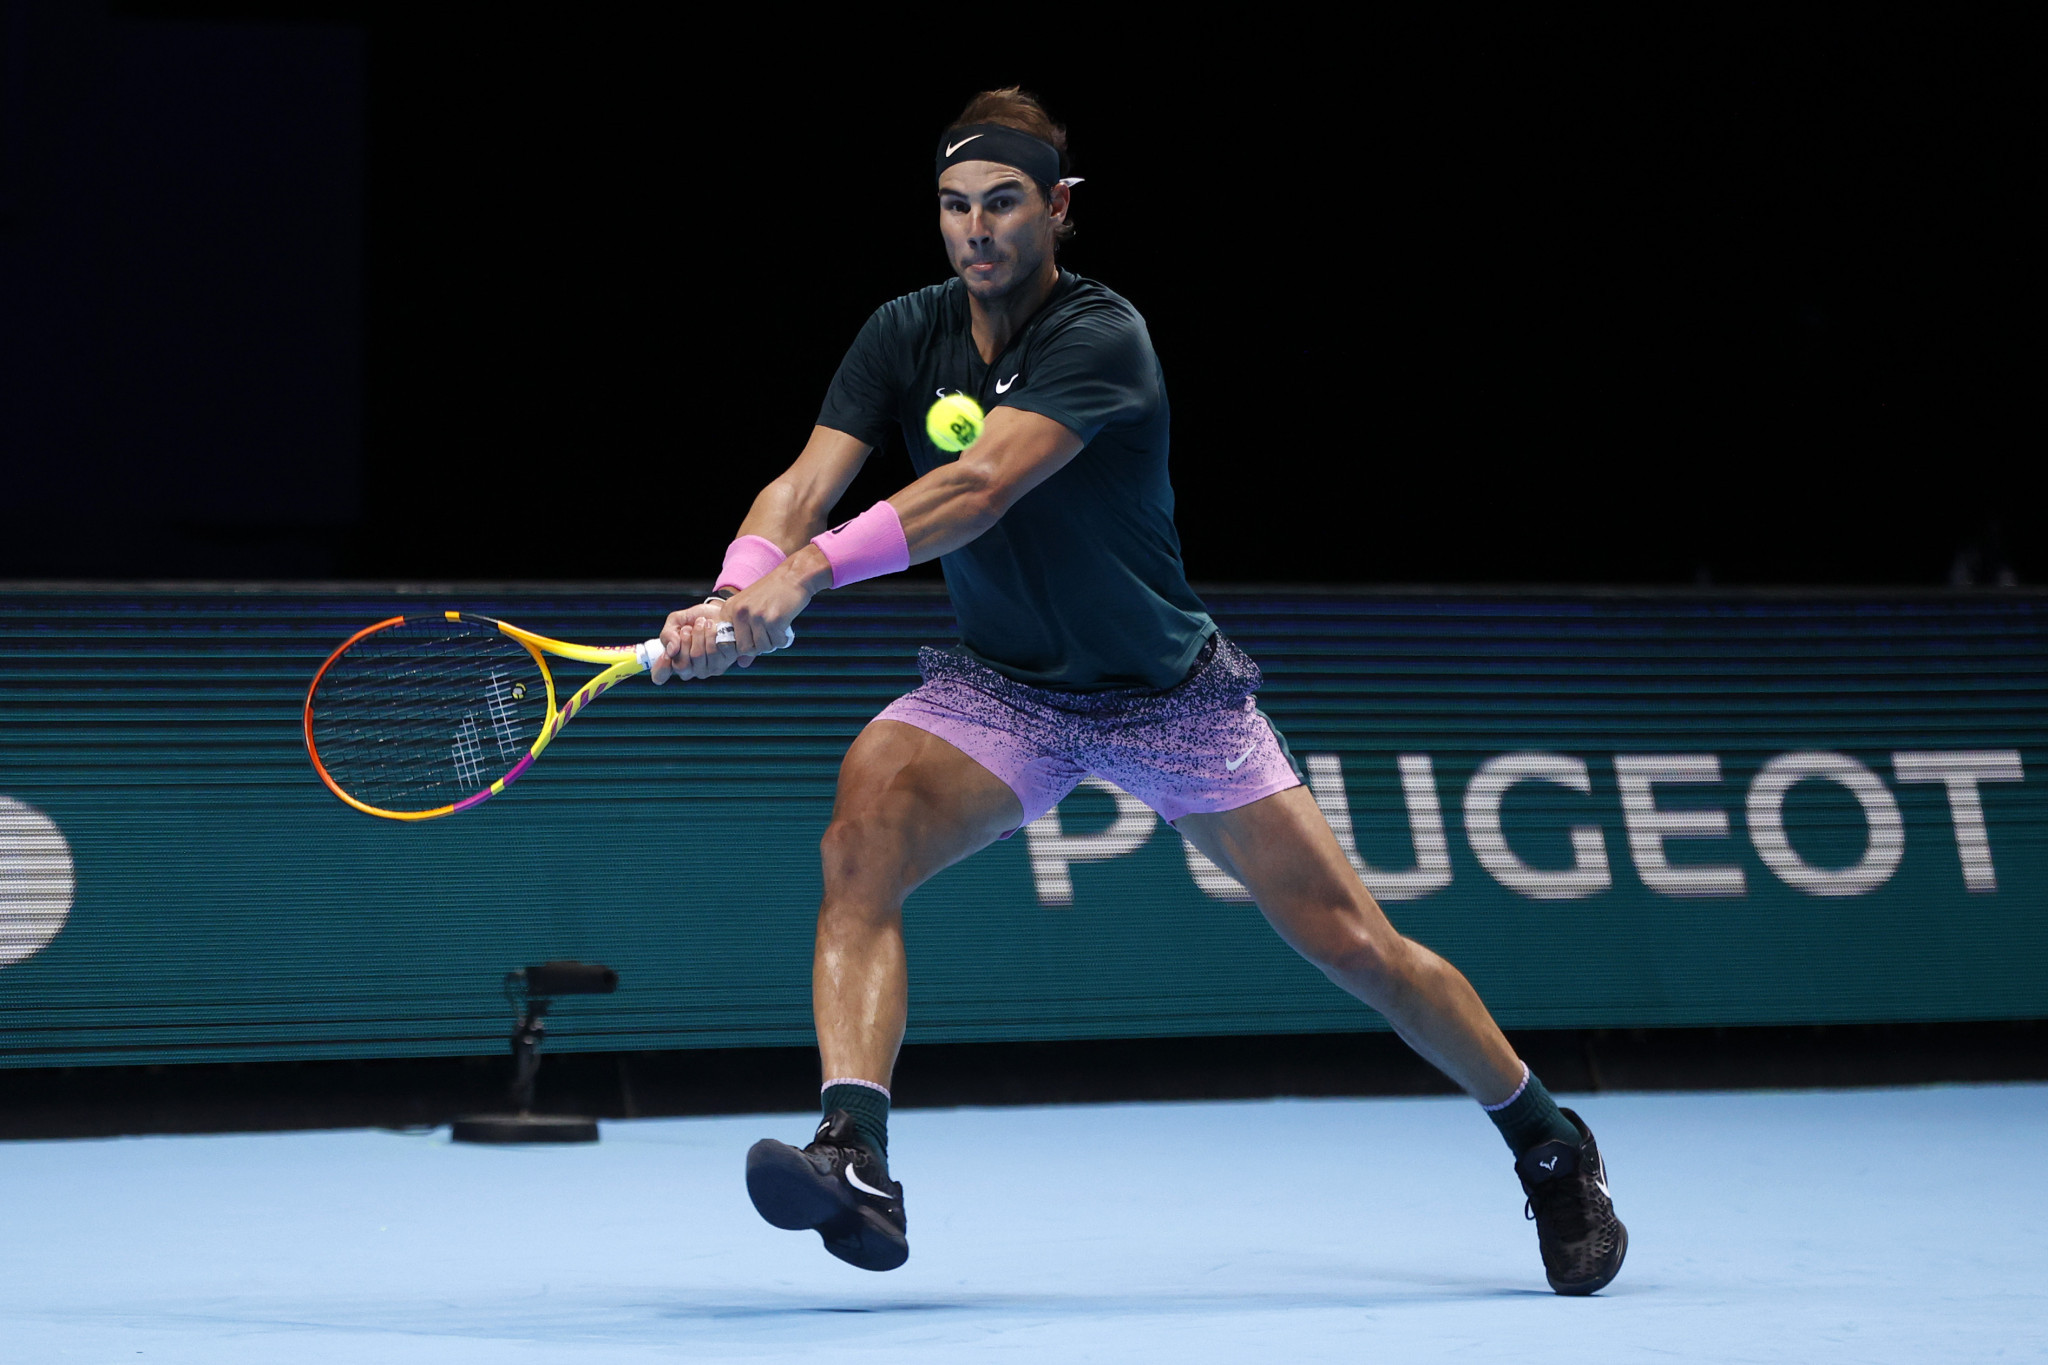 Nadal and Federer re-elected to ATP Player Council for 2021-2022